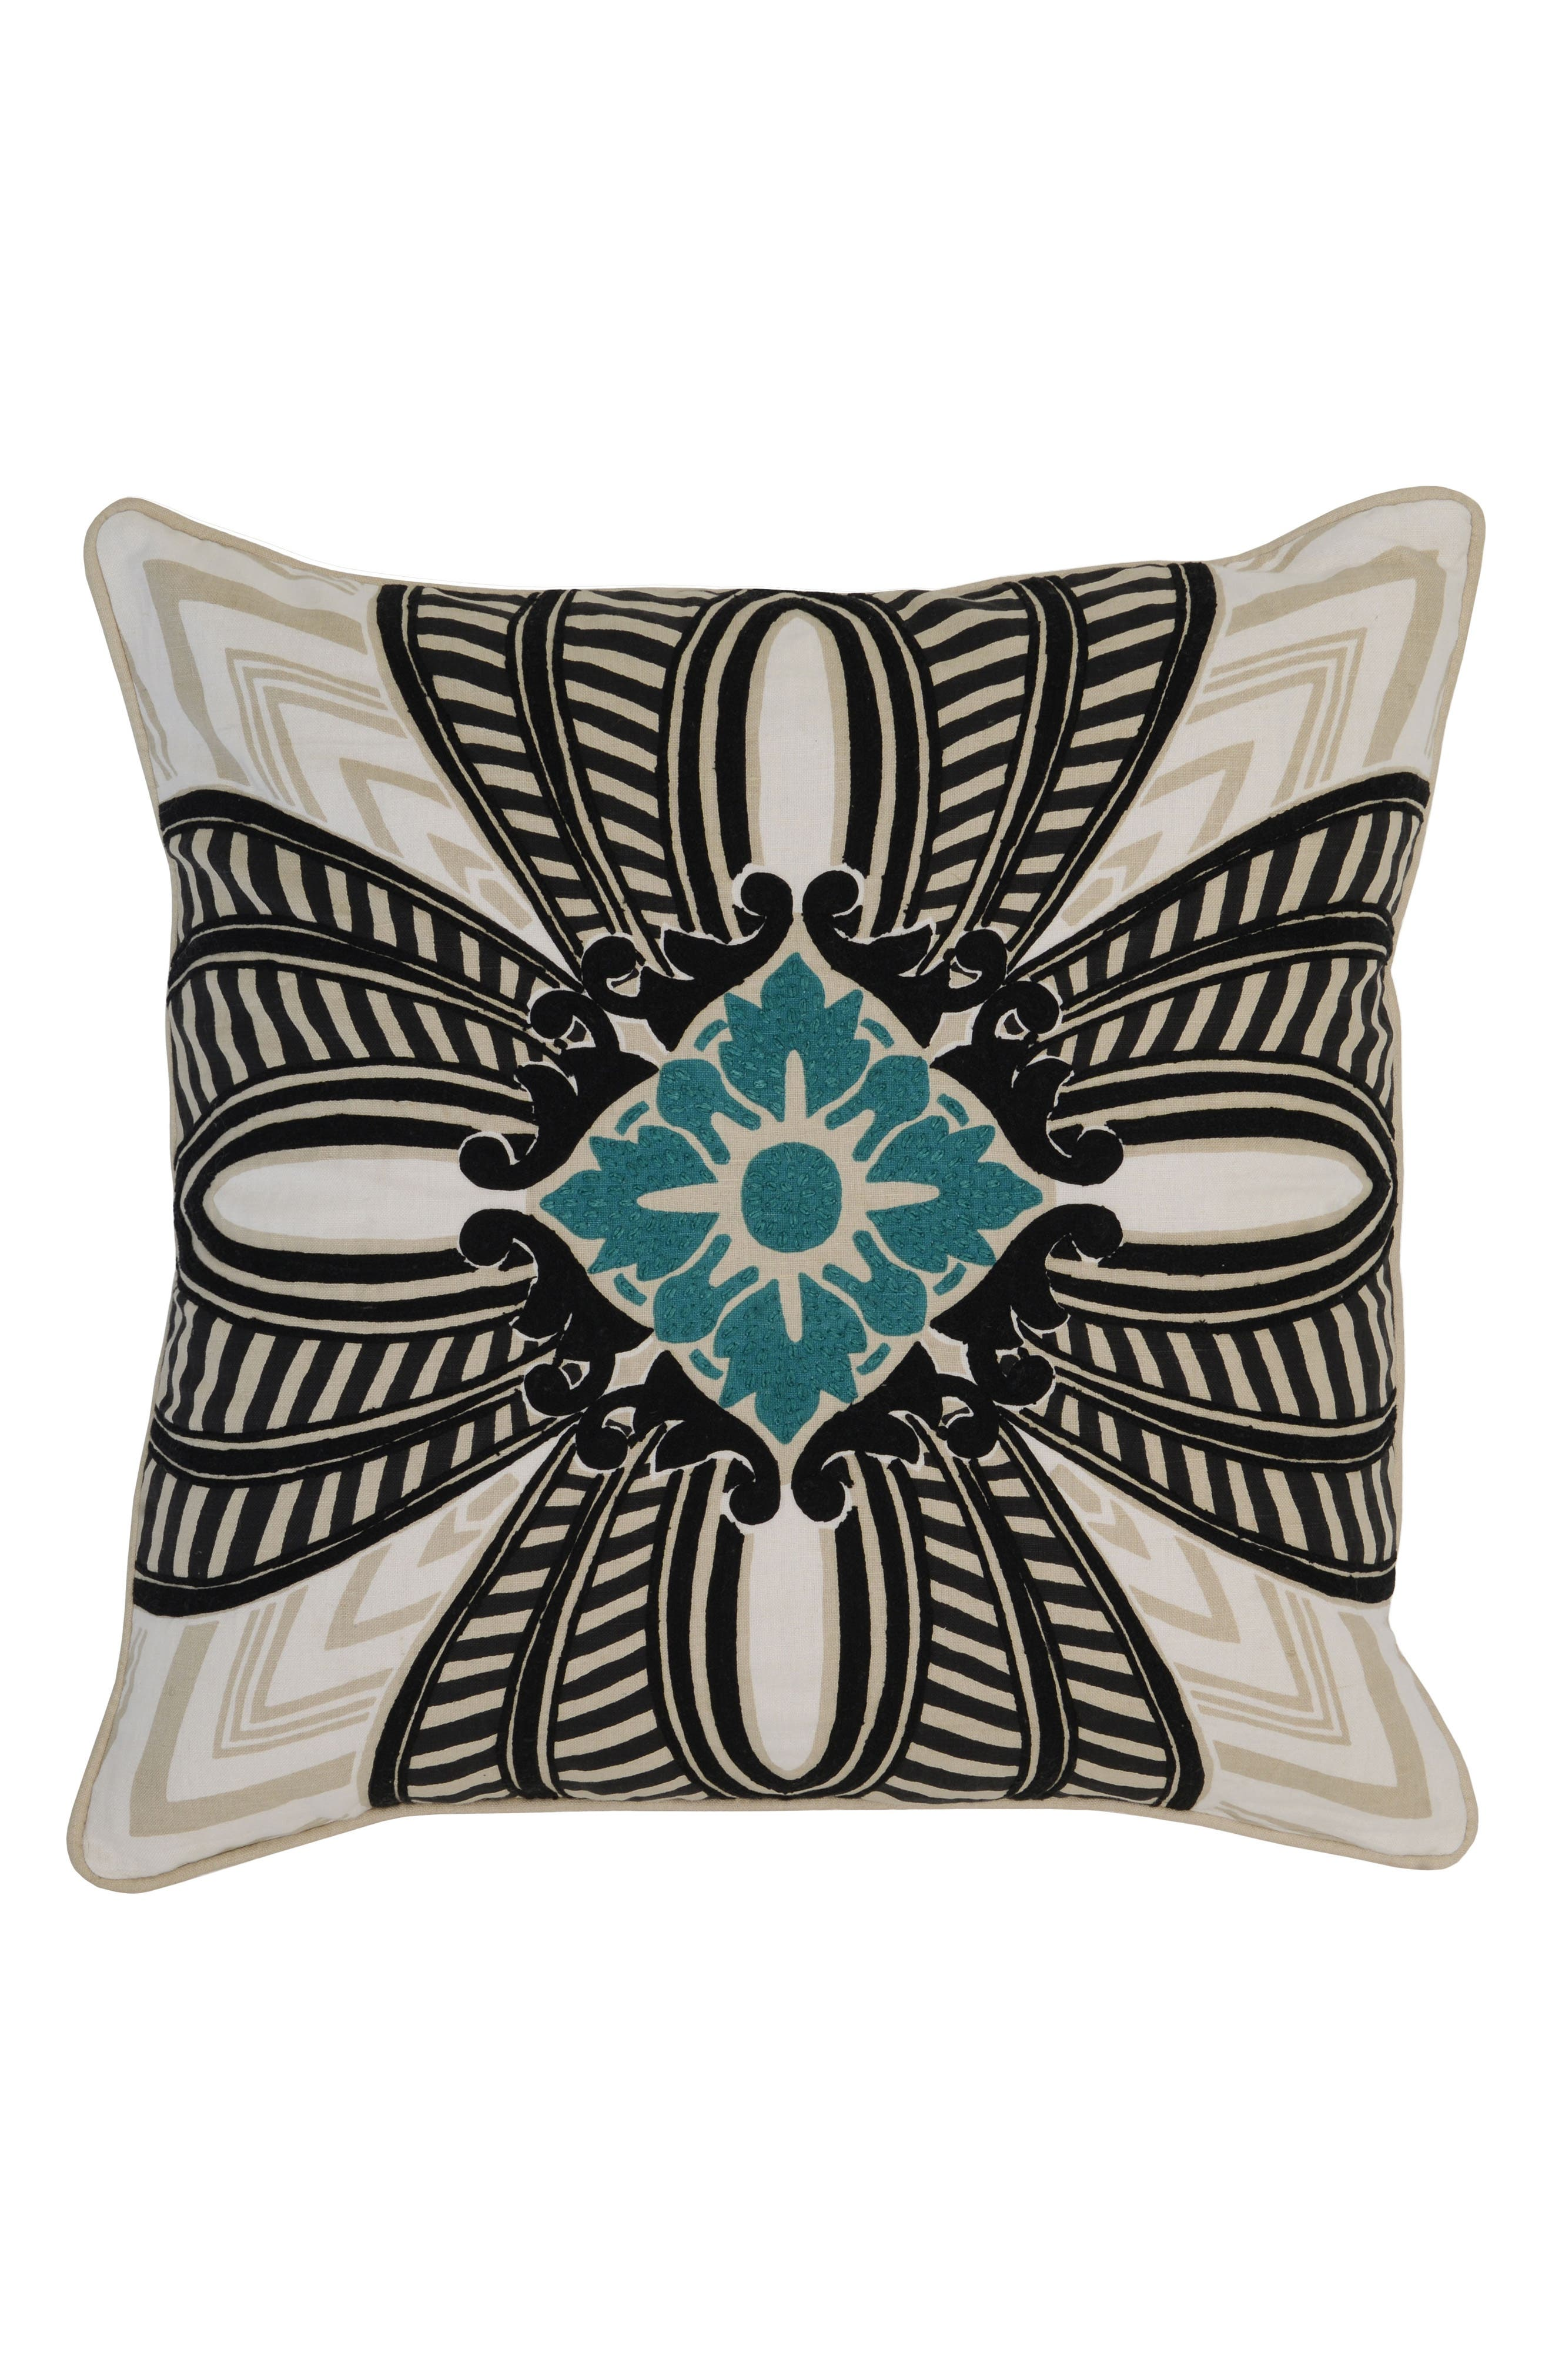 Cabos Accent Pillow,                             Main thumbnail 1, color,                             Black/ Ivory/ Teal